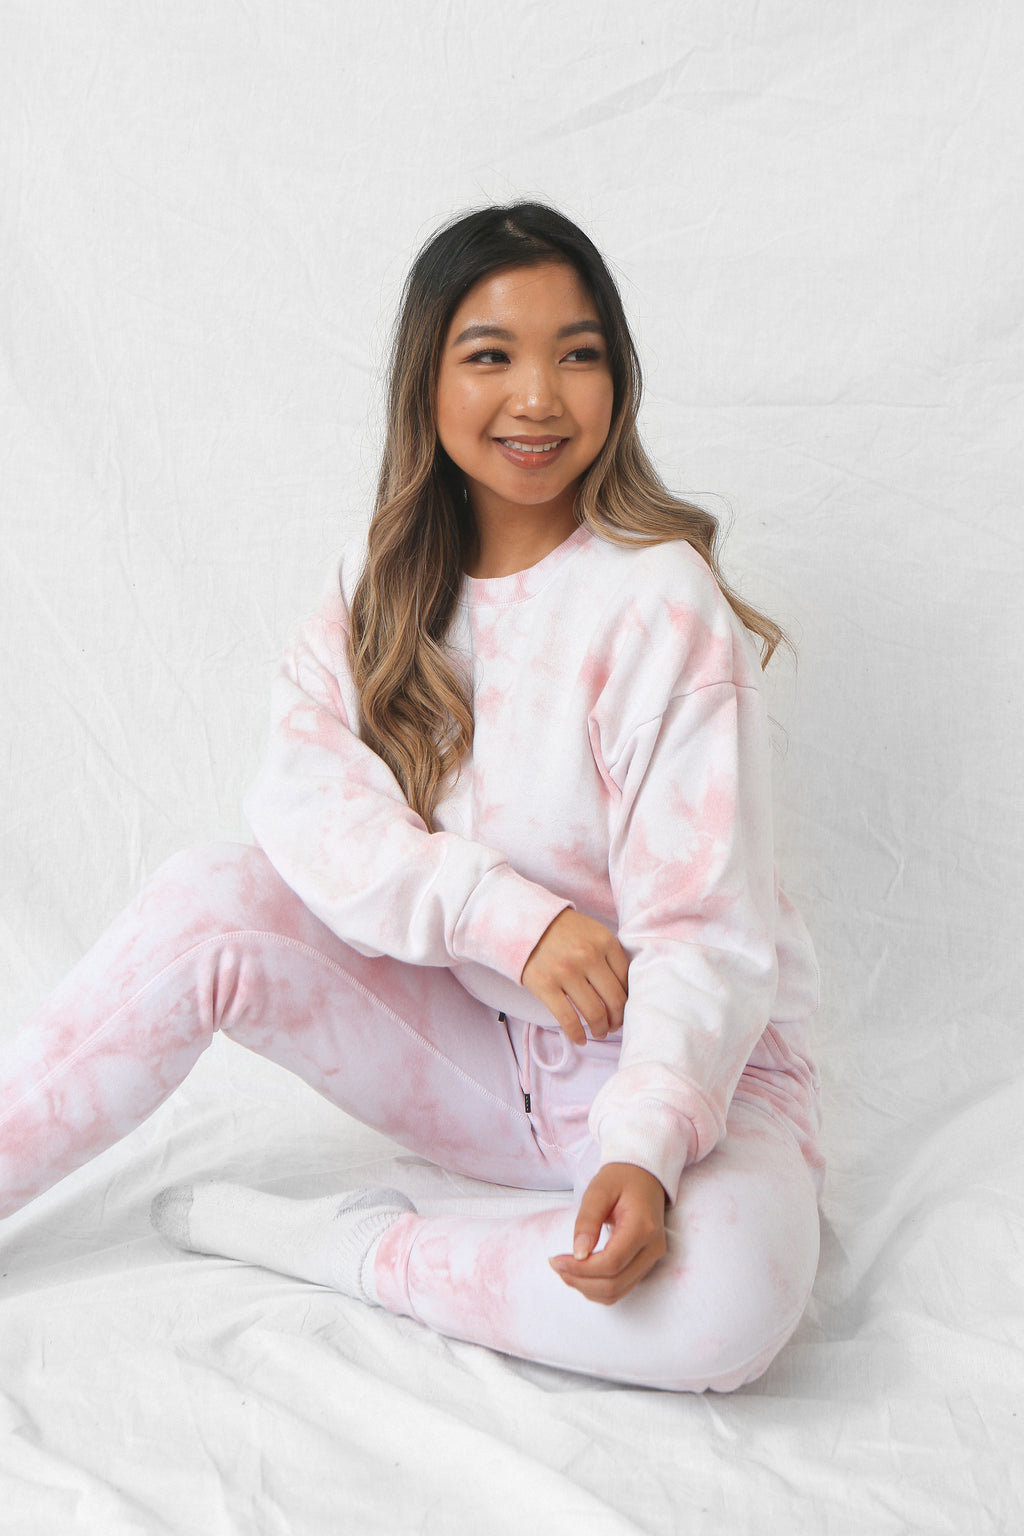 wild rina wildrina.com baby pink light pink blush tie dye set sweatpants jogggers sweats sweatshirt sweater crewneck